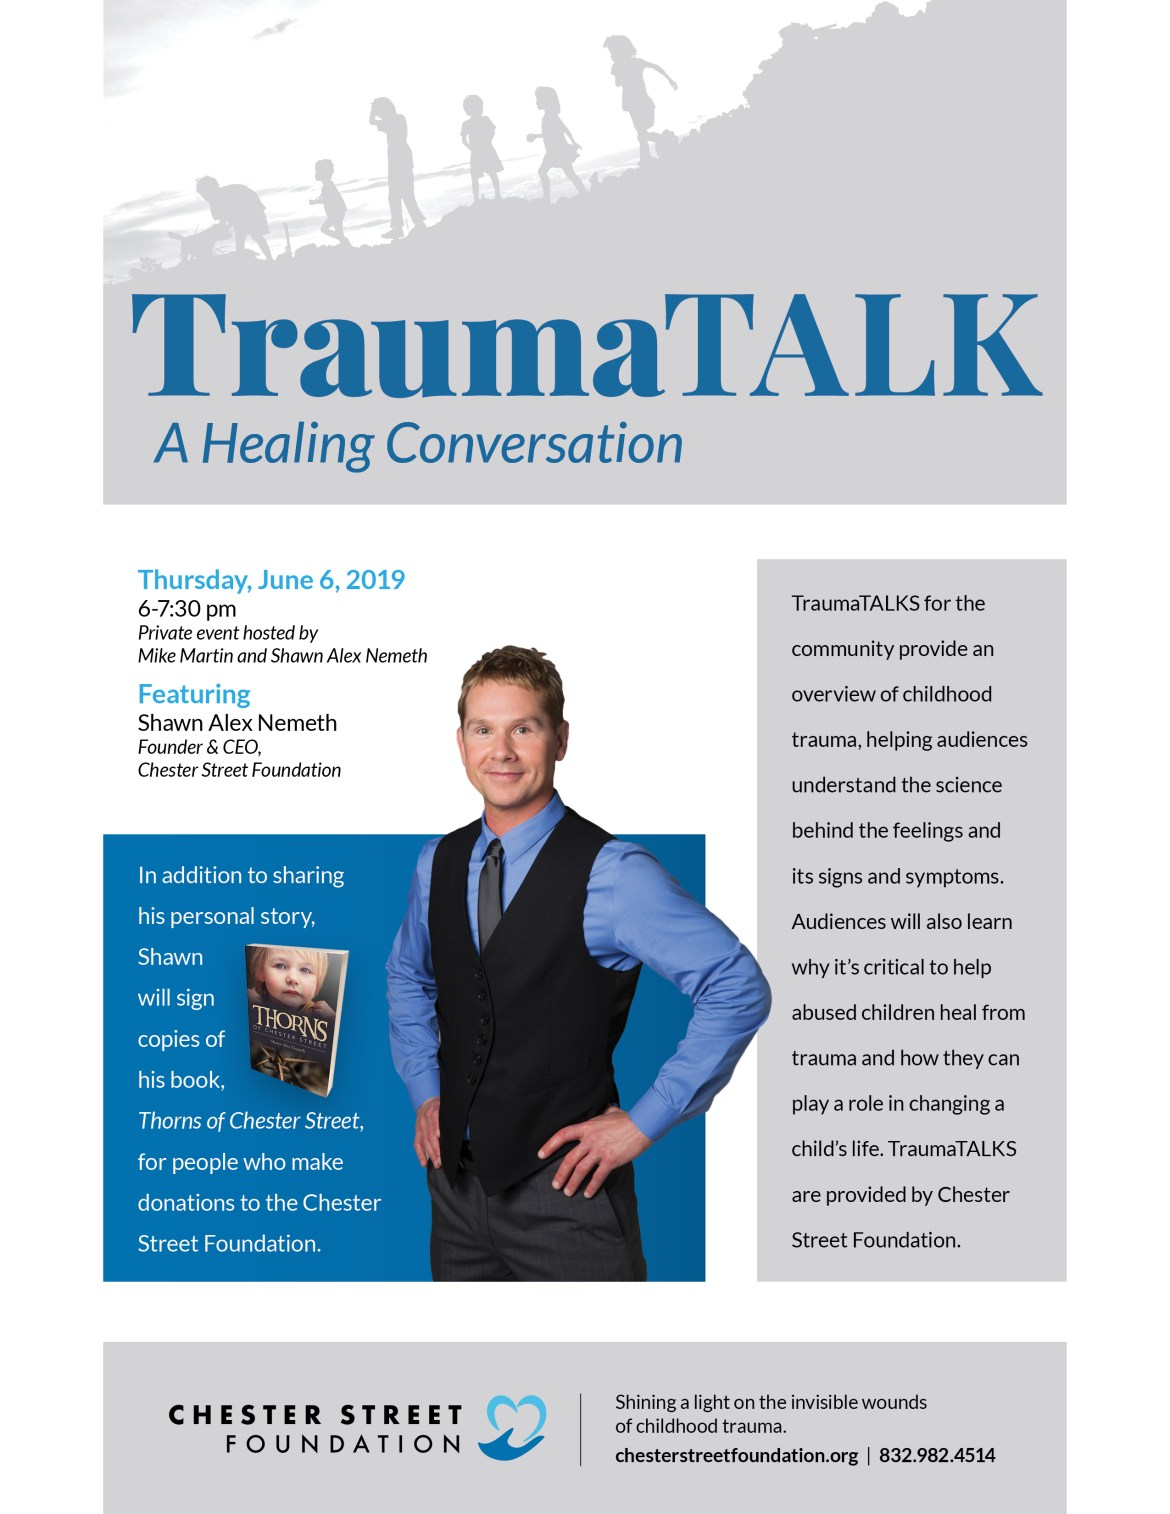 TraumaTALK | June 6, 2019